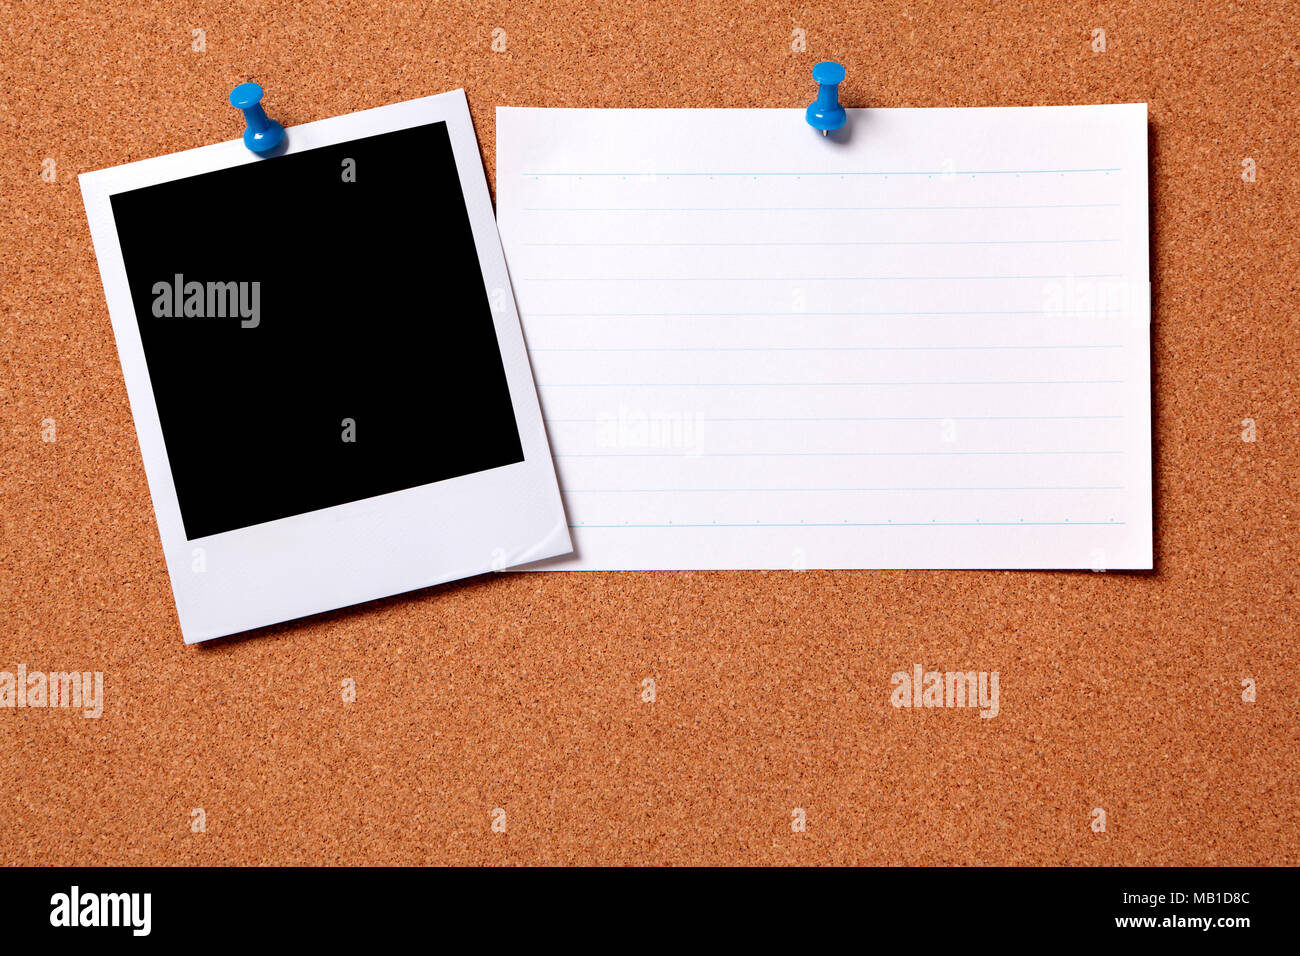 Blank photo print and office index card pinned to a cork